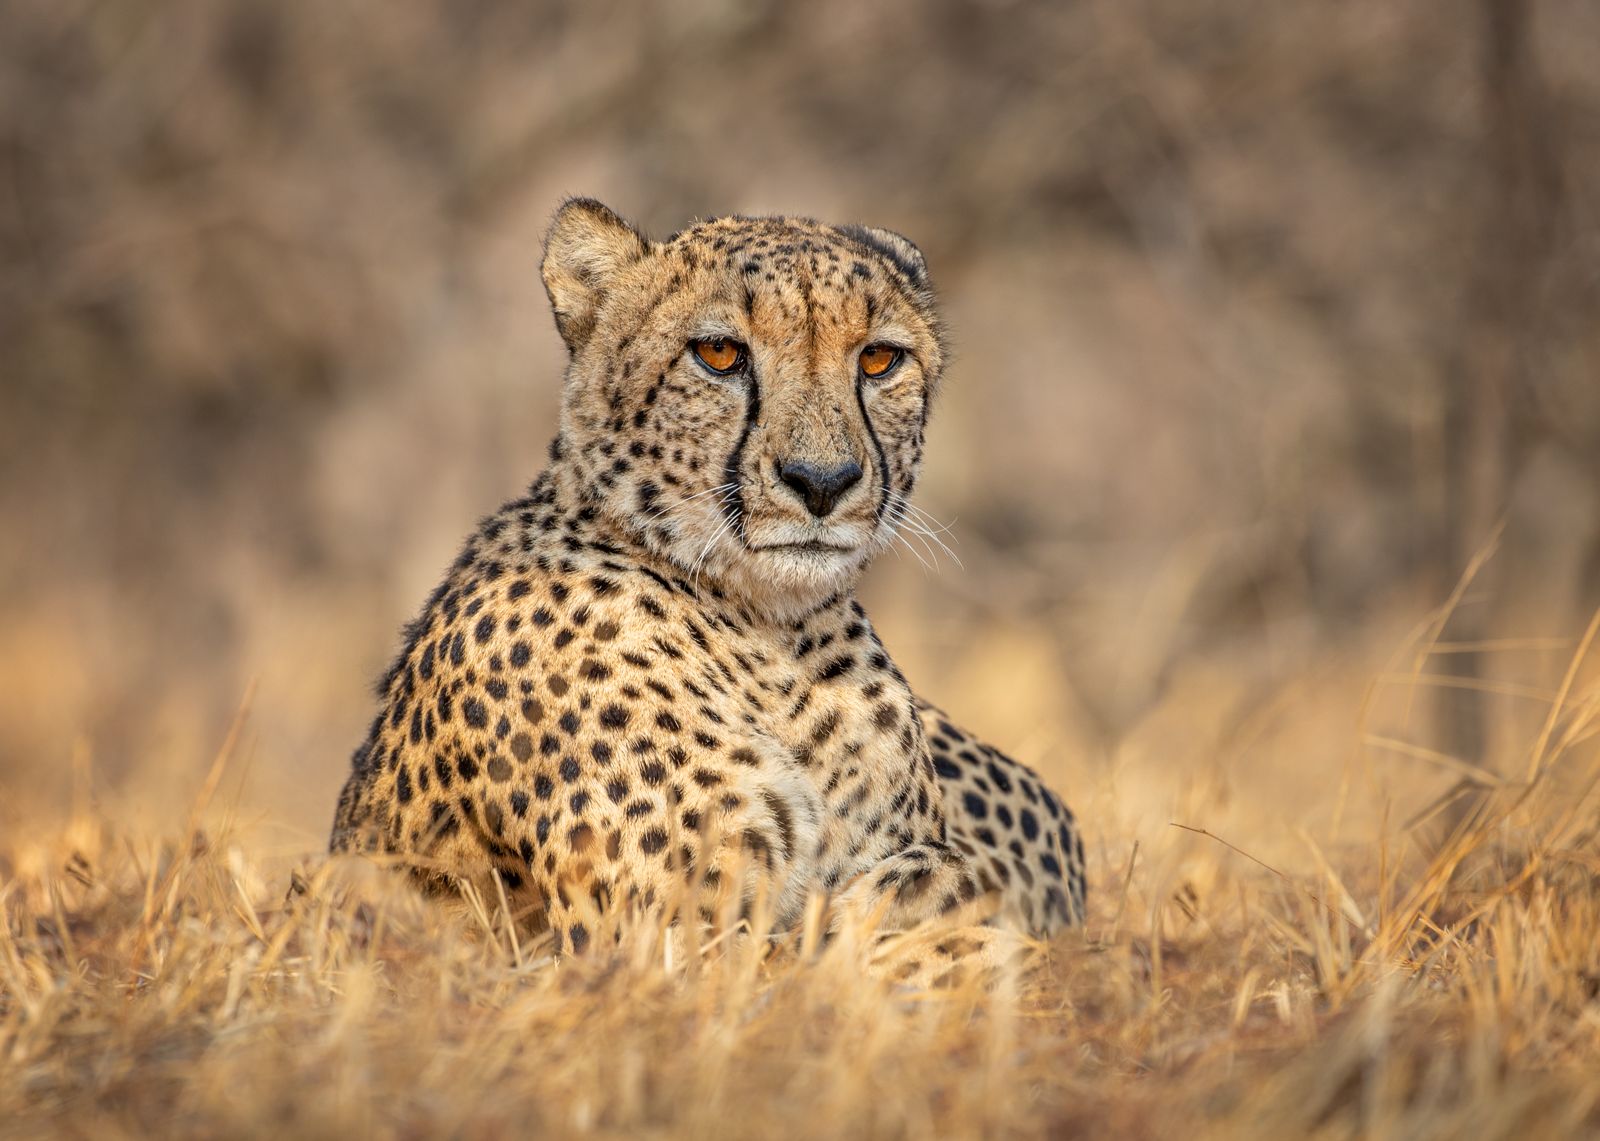 <h5>Cheetah Sunrise - Moditlo Game Reserve - South Africa</h5><p>Steve Bancroft																	</p>